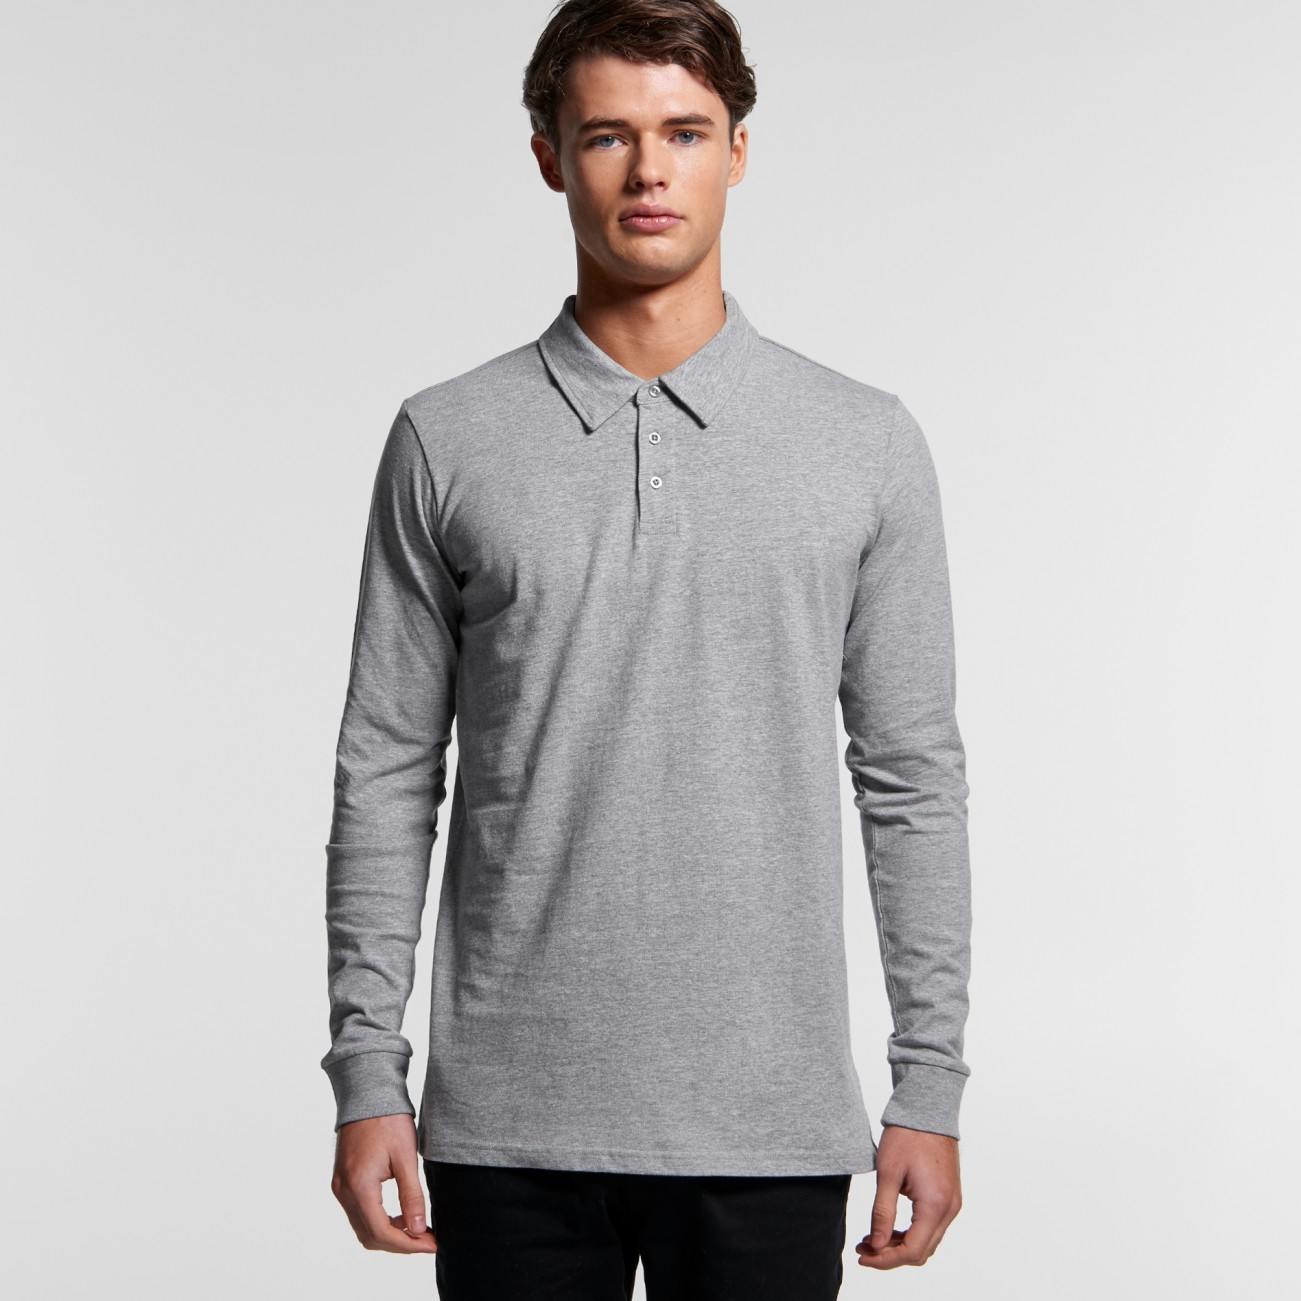 AS 5404 L/S Chad Polo